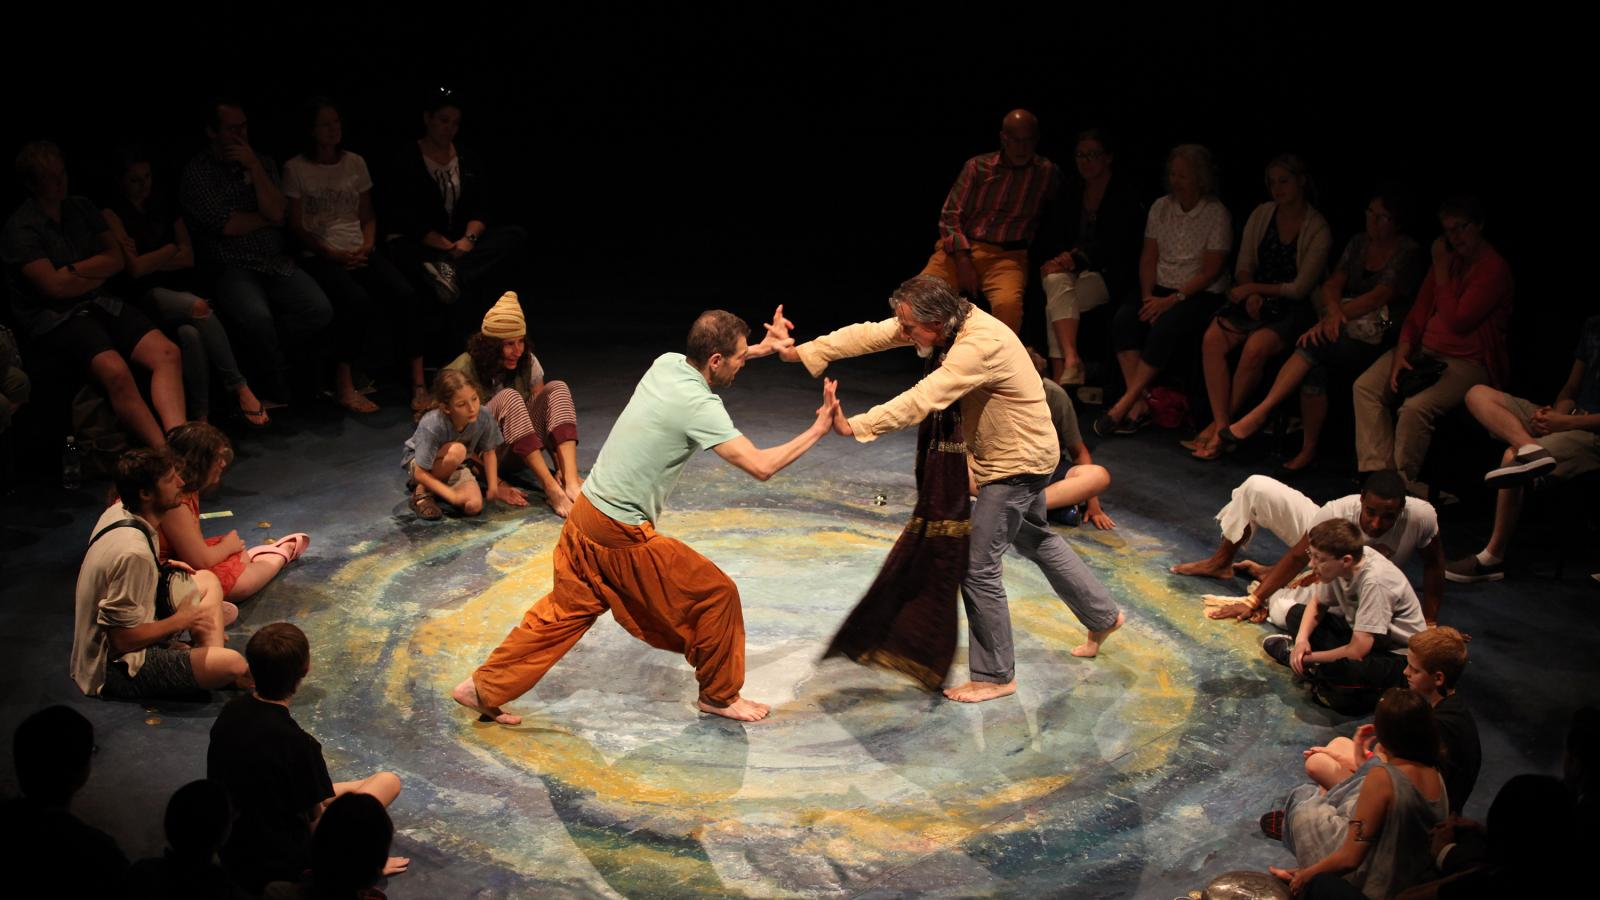 Two performers press into each other in The Tempest as an audience encircles the performing space.